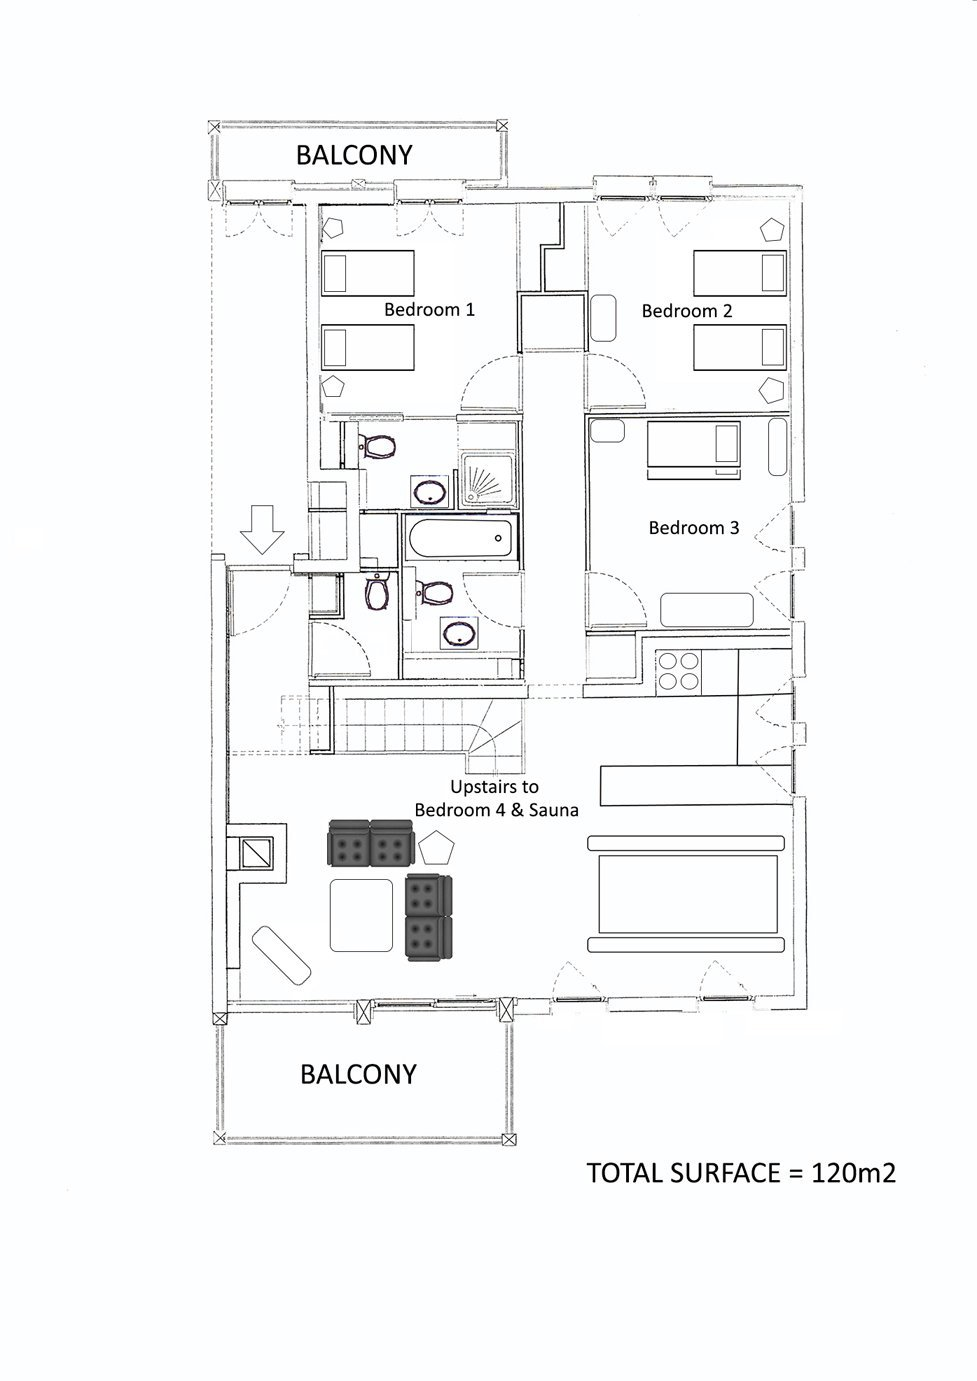 Le Rocher Blanc Apartment Floor Plan in Ste Foy